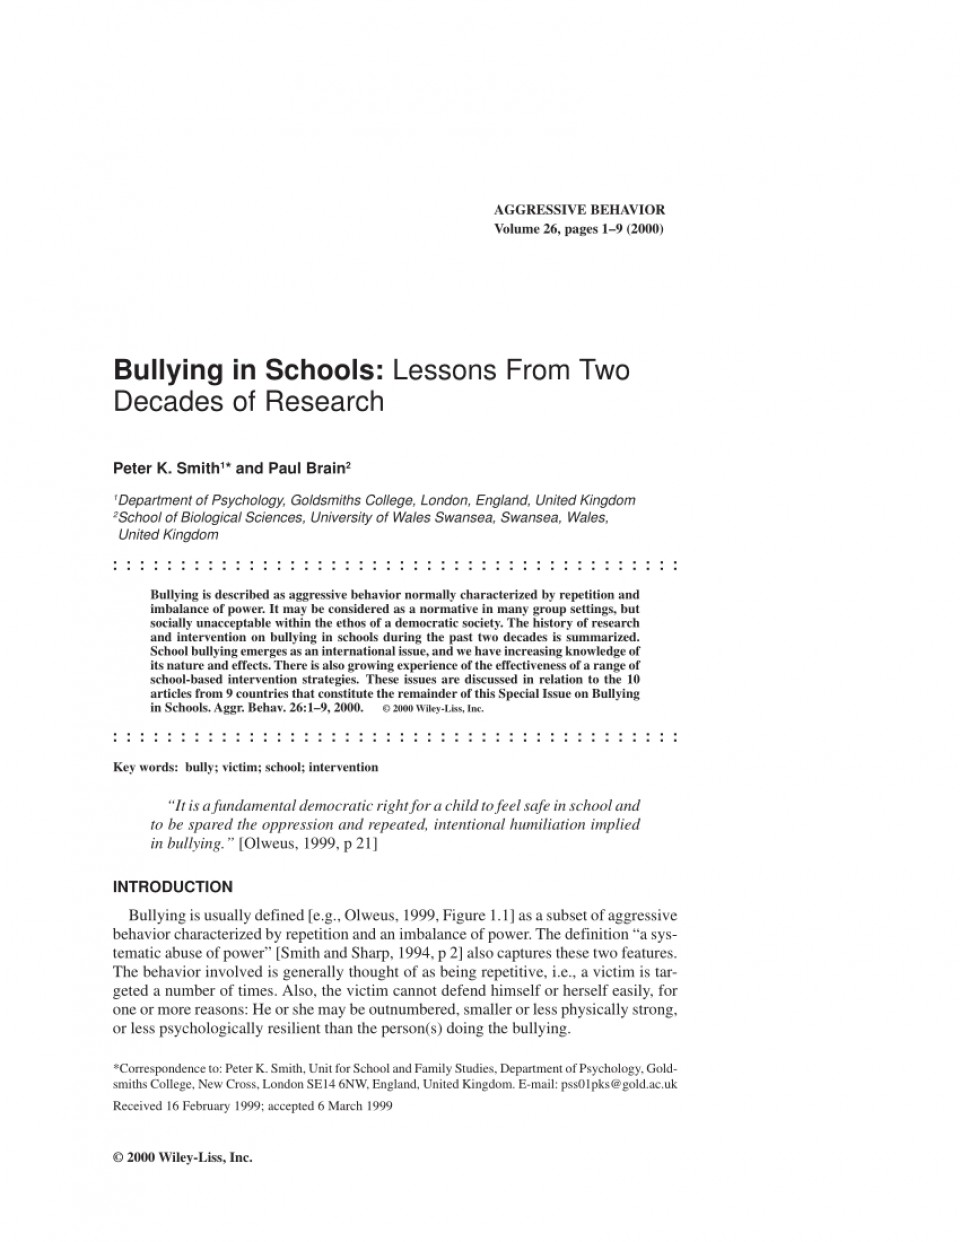 007 Research Paper Largepreview Bullying Imposing Pdf Short About Quantitative Effects Of 960